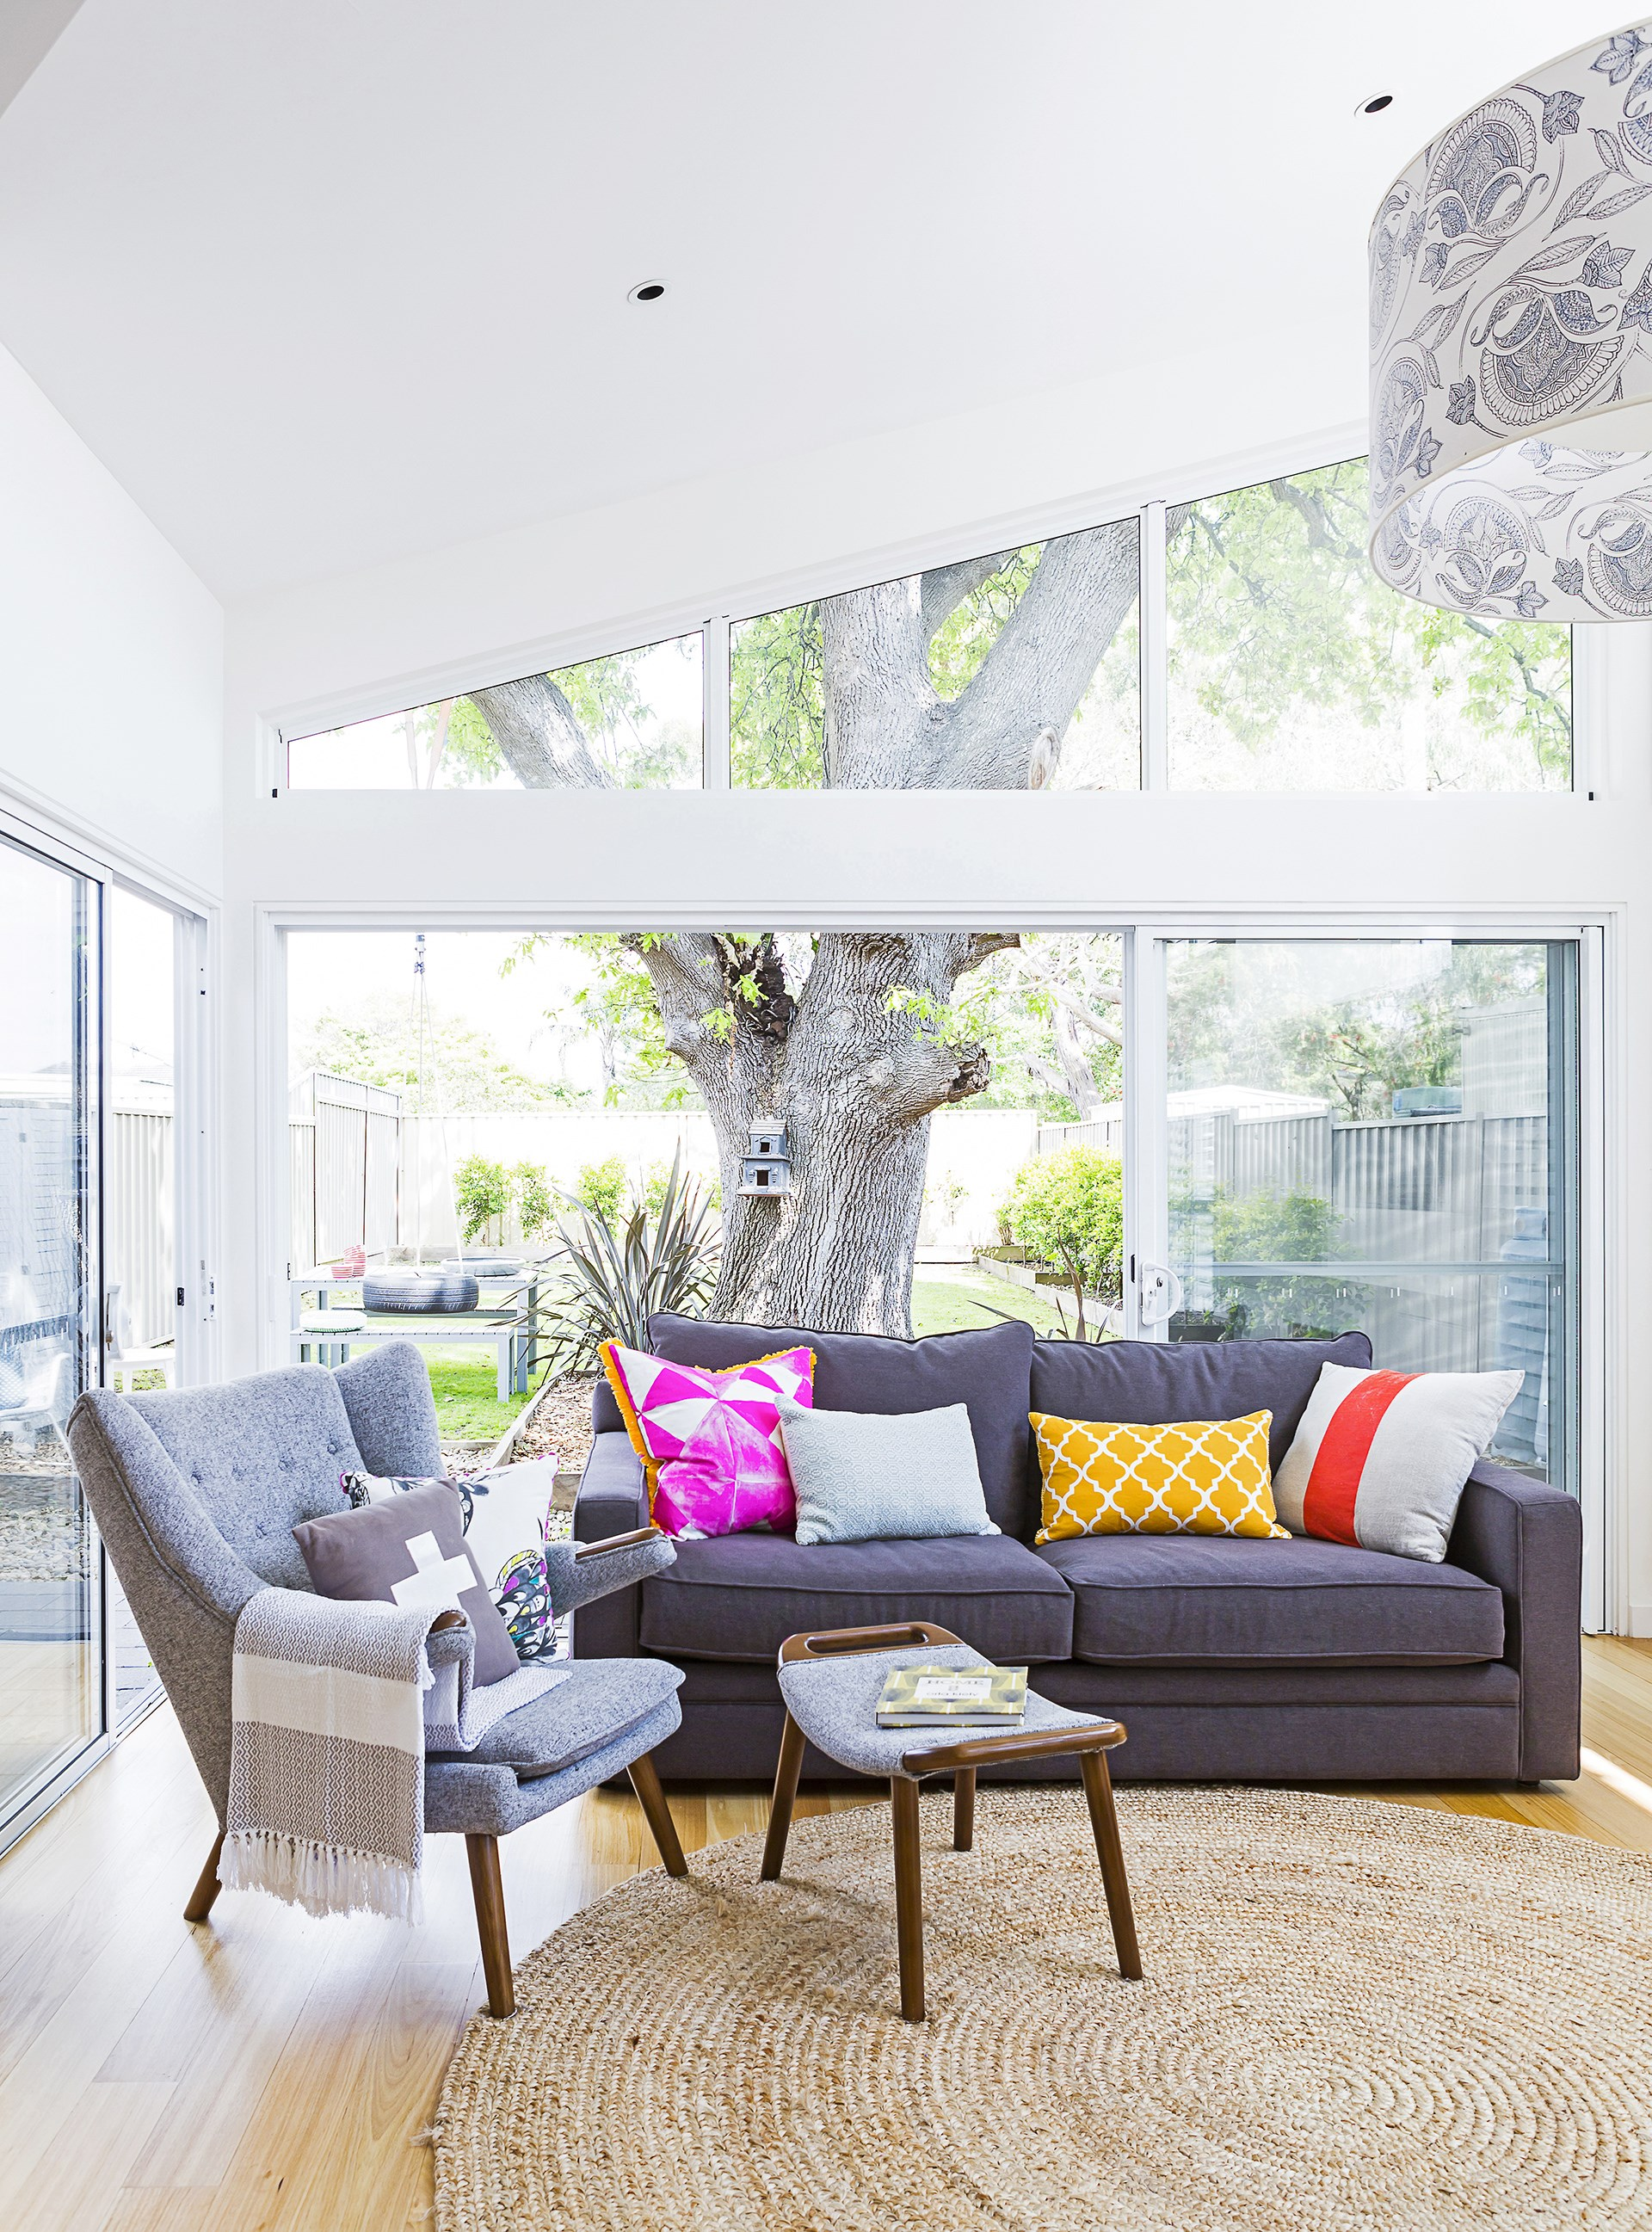 """This light and bright living room in a new Melbourne house can be opened right up to let the summer breezes inside, but also welcomes the northern sun in winter through transom windows - it's pleasant no matter what the temperature. [Take the tour](http://www.homestolove.com.au/gallery-finishing-touches-for-a-new-family-home-1709